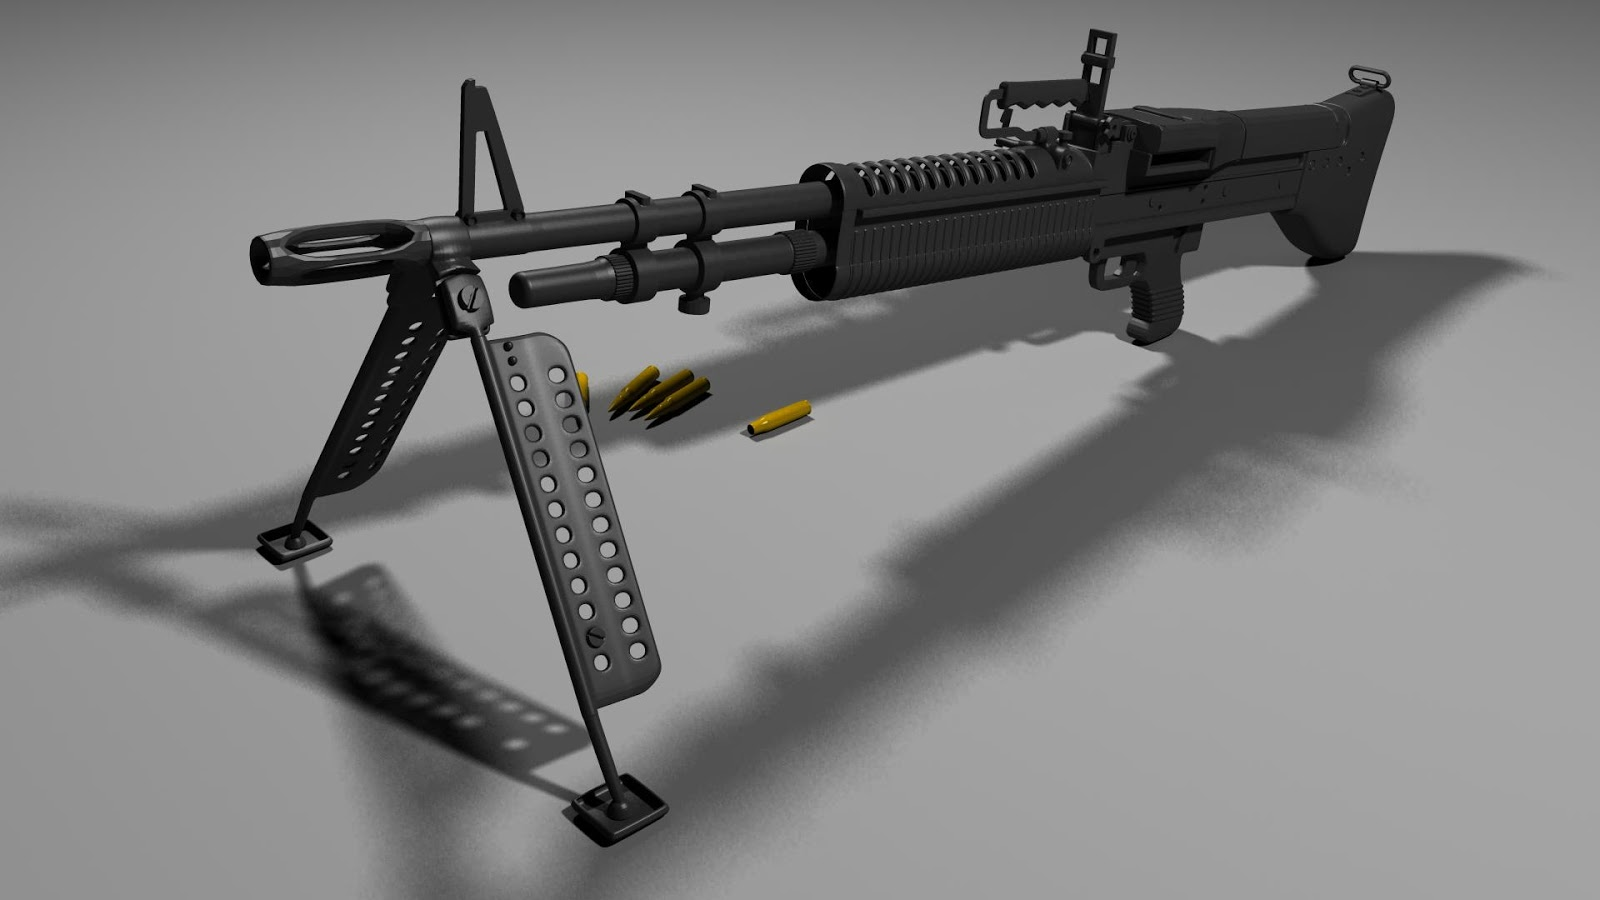 welcome to the world of weapons: M60